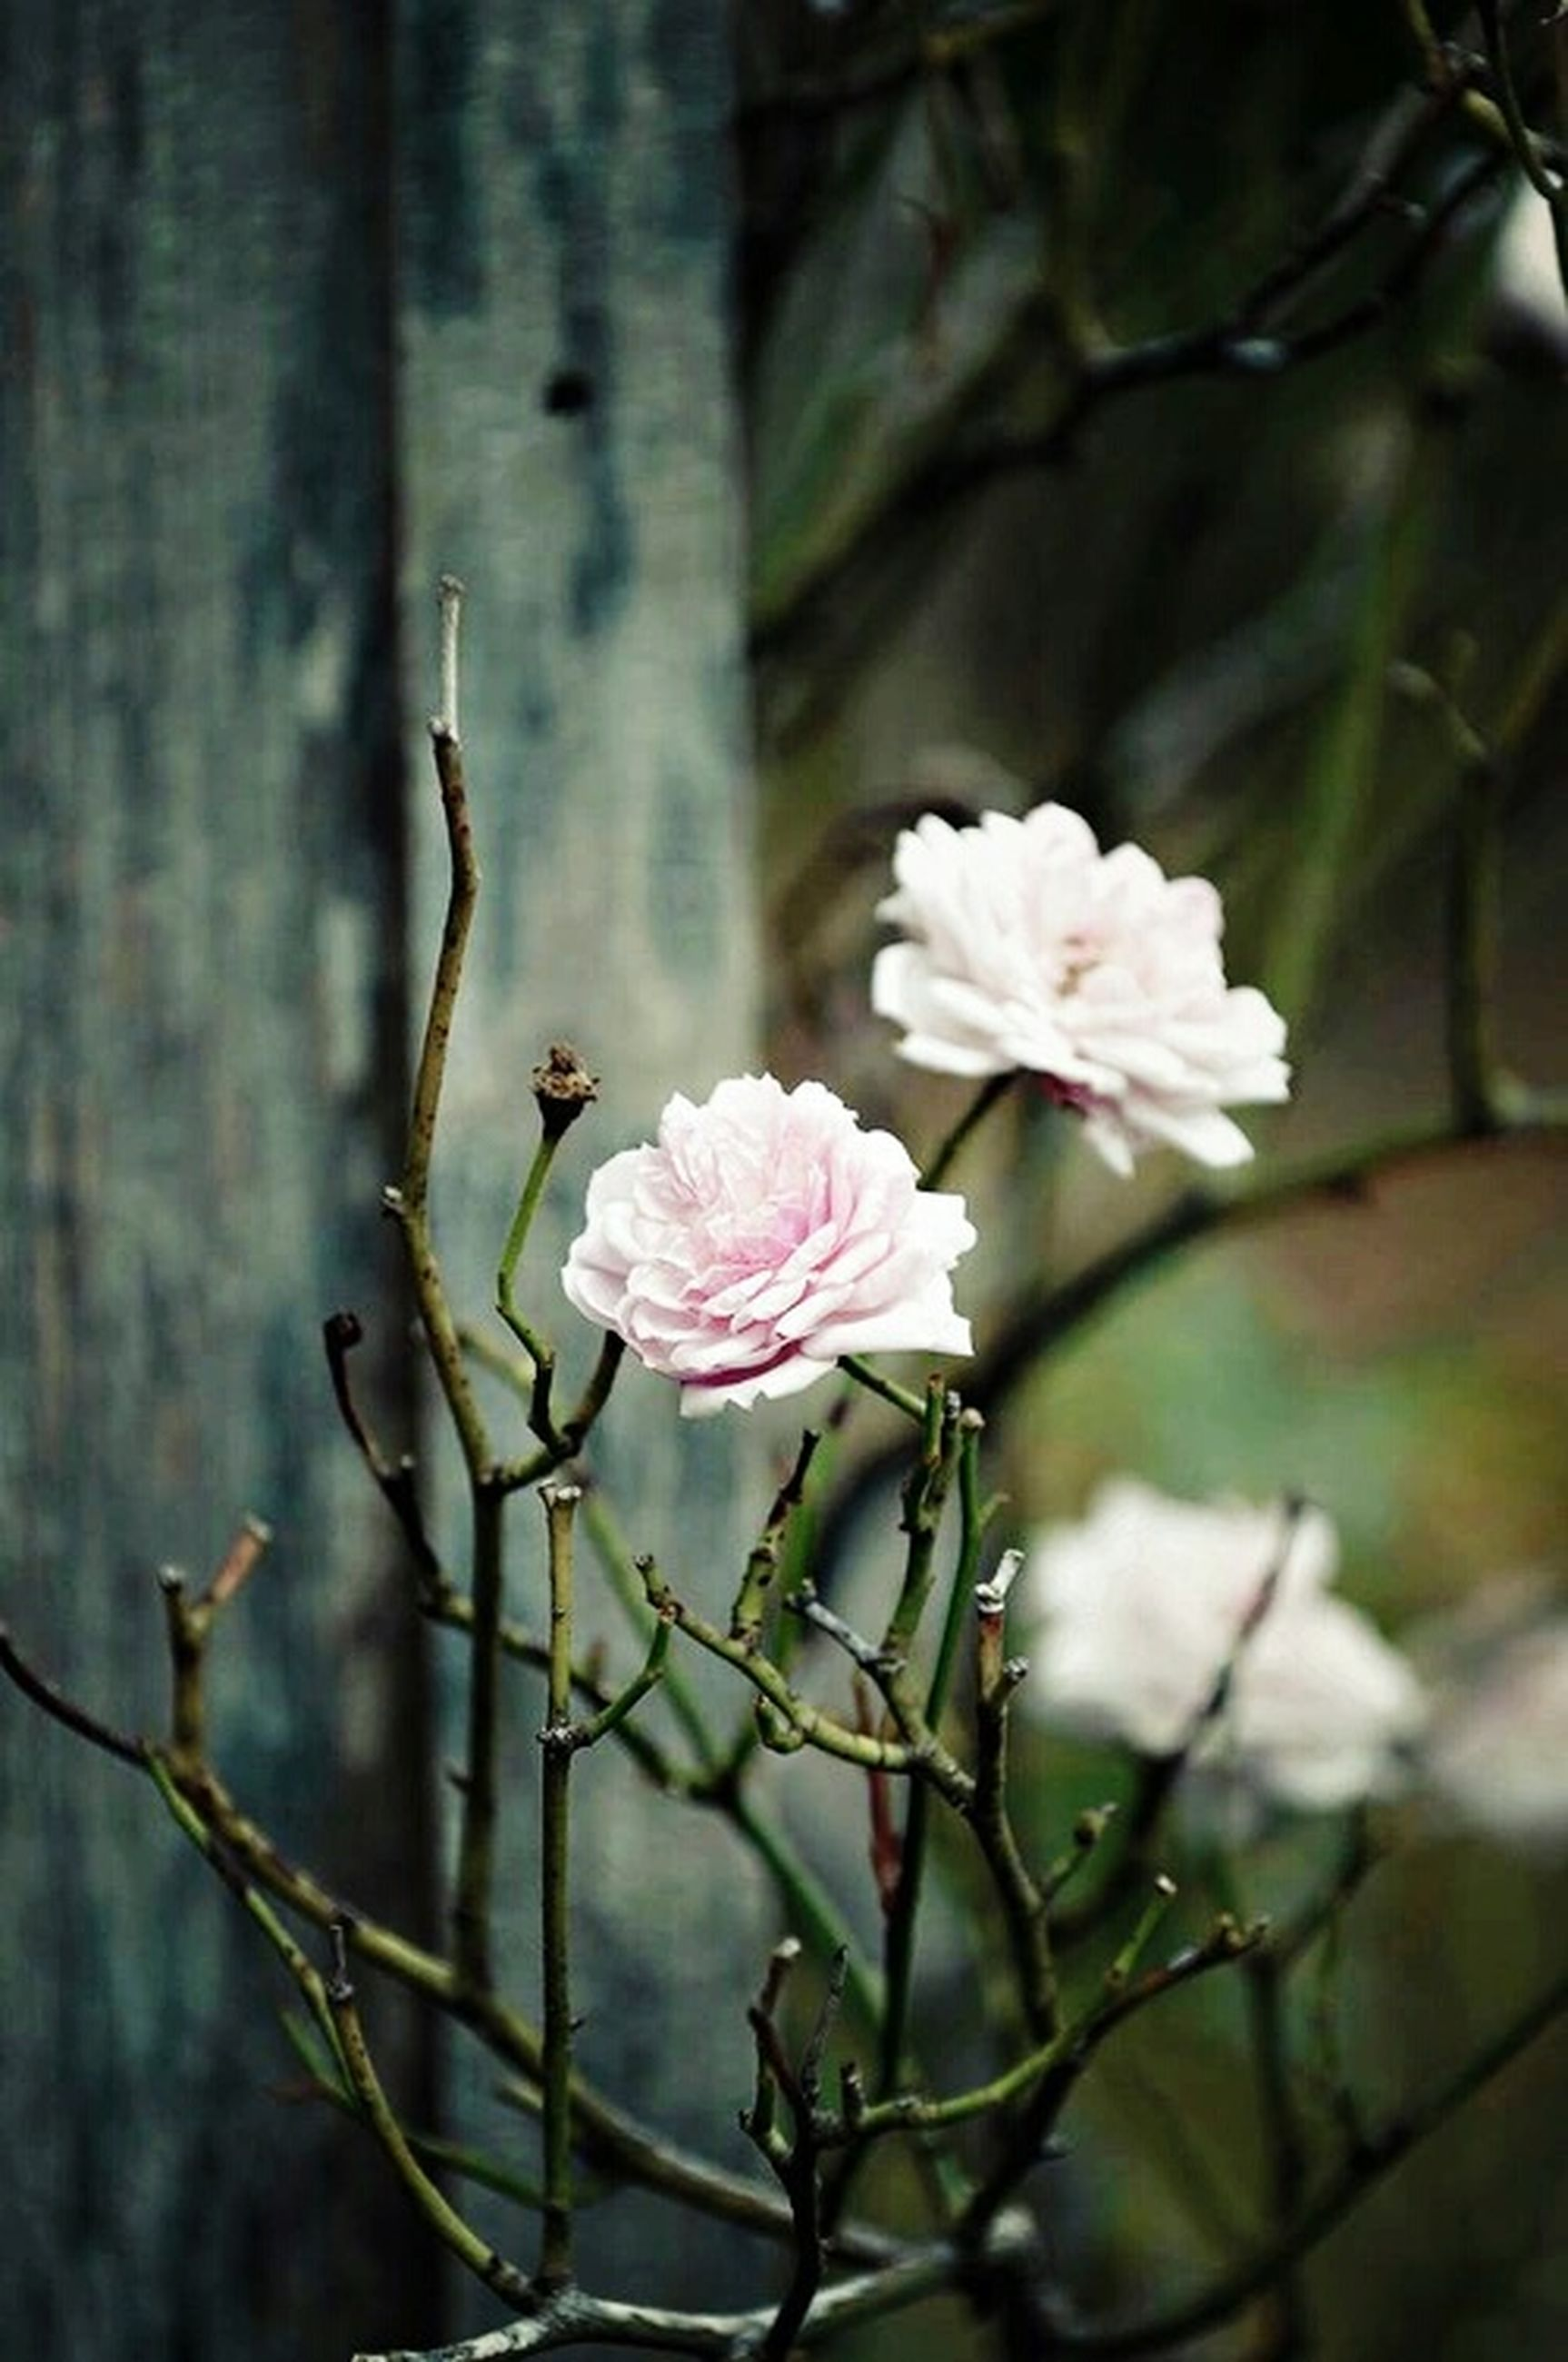 flower, growth, freshness, fragility, branch, focus on foreground, petal, beauty in nature, close-up, nature, blossom, stem, tree, plant, twig, blooming, flower head, in bloom, white color, bud